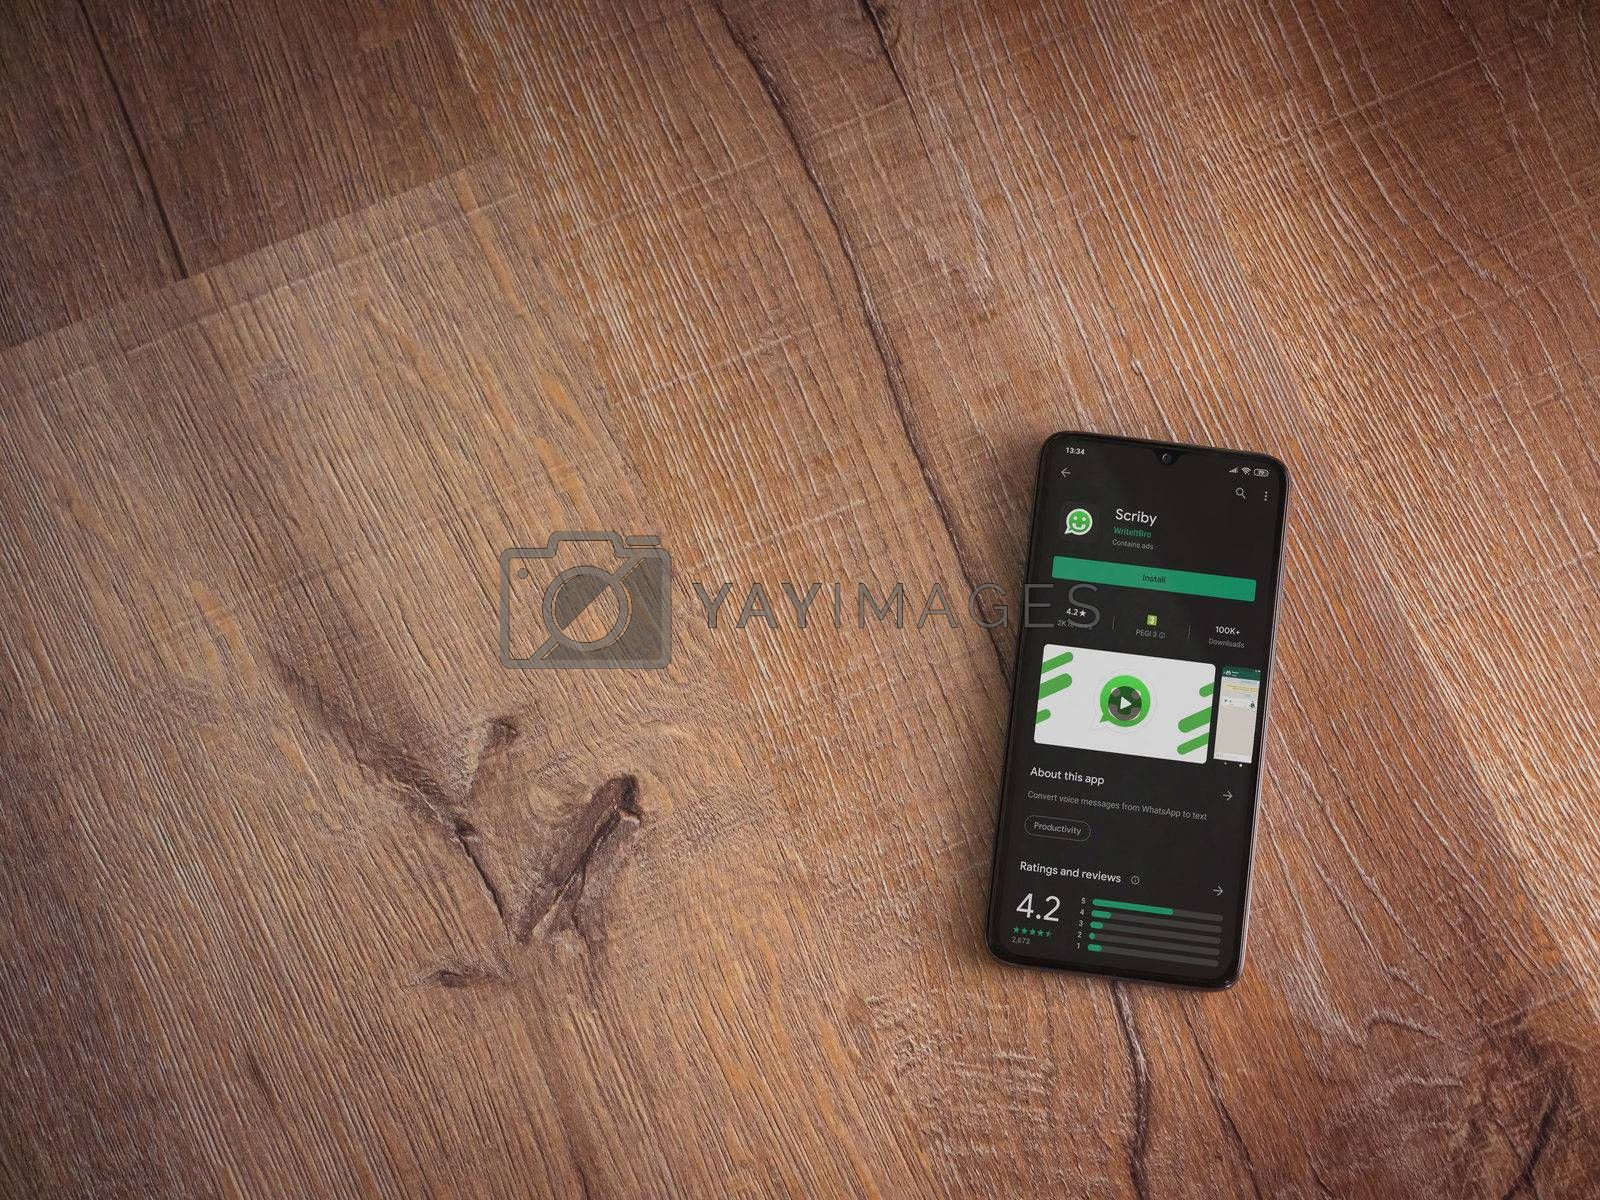 Lod, Israel - July 8, 2020: Scriby app play store page on the display of a black mobile smartphone on wooden background. Top view flat lay with copy space.